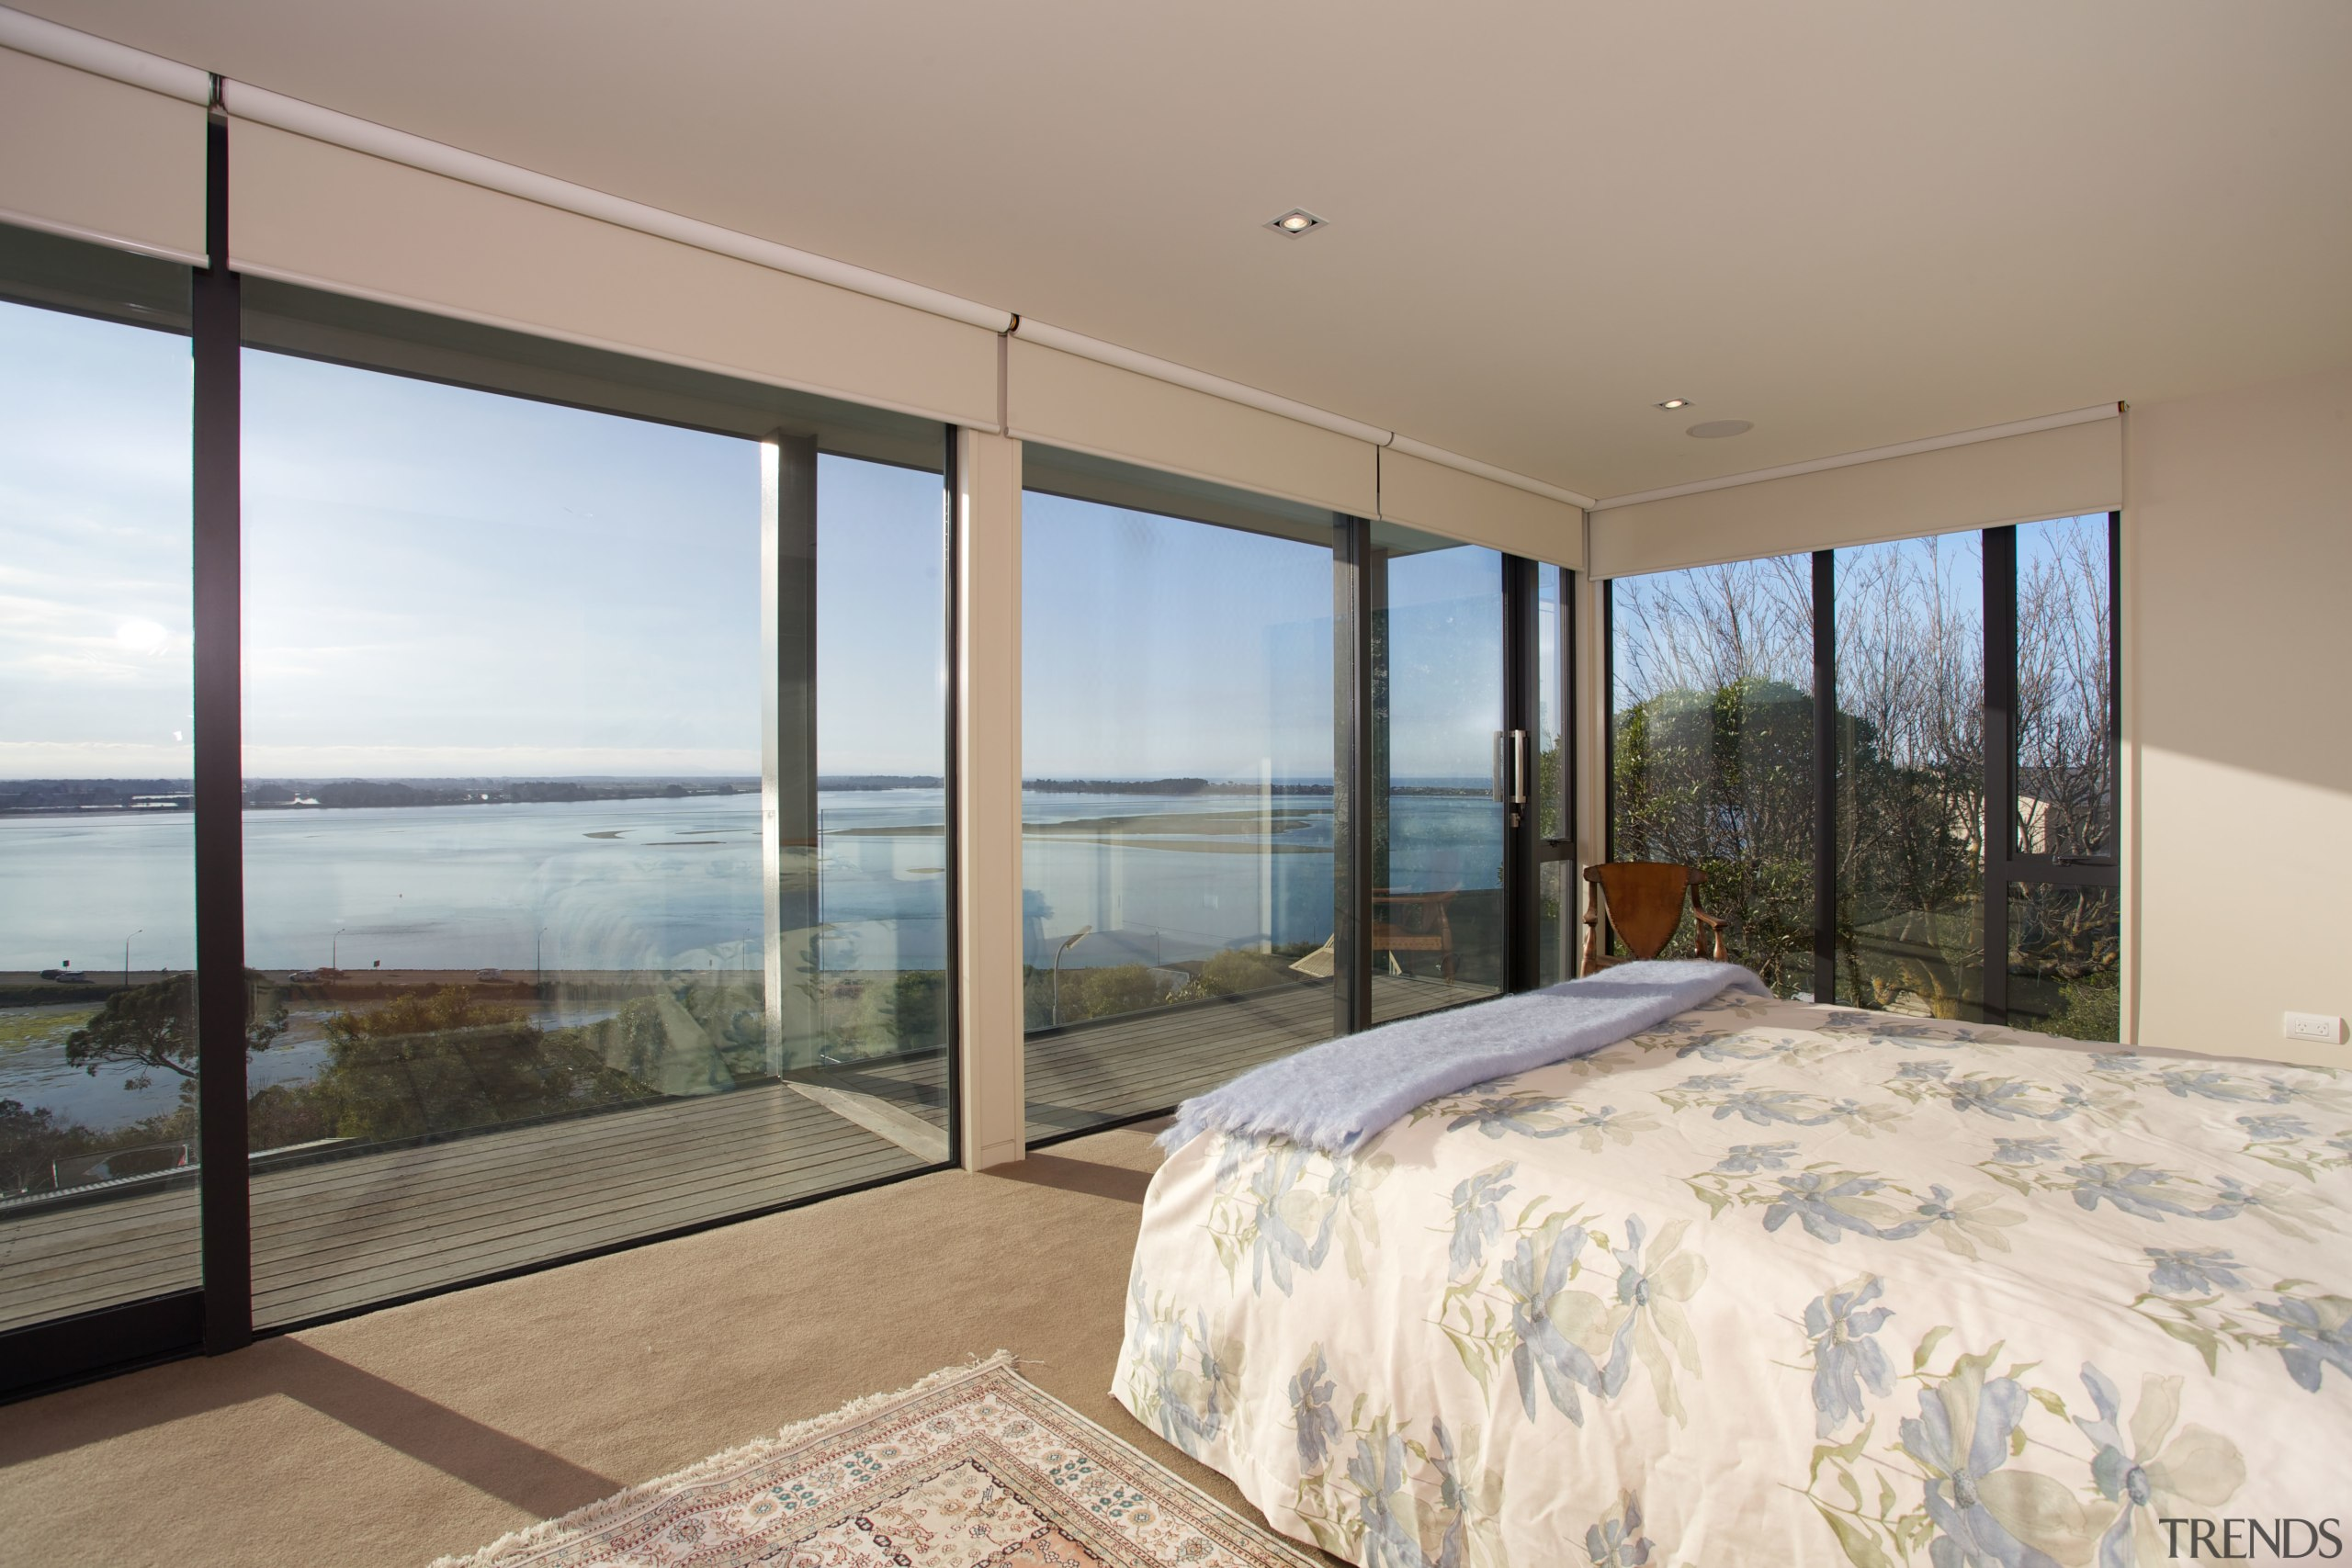 Contemporary master bedroom with sea views - Contemporary architecture, bedroom, condominium, door, estate, home, house, interior design, property, real estate, room, window, gray